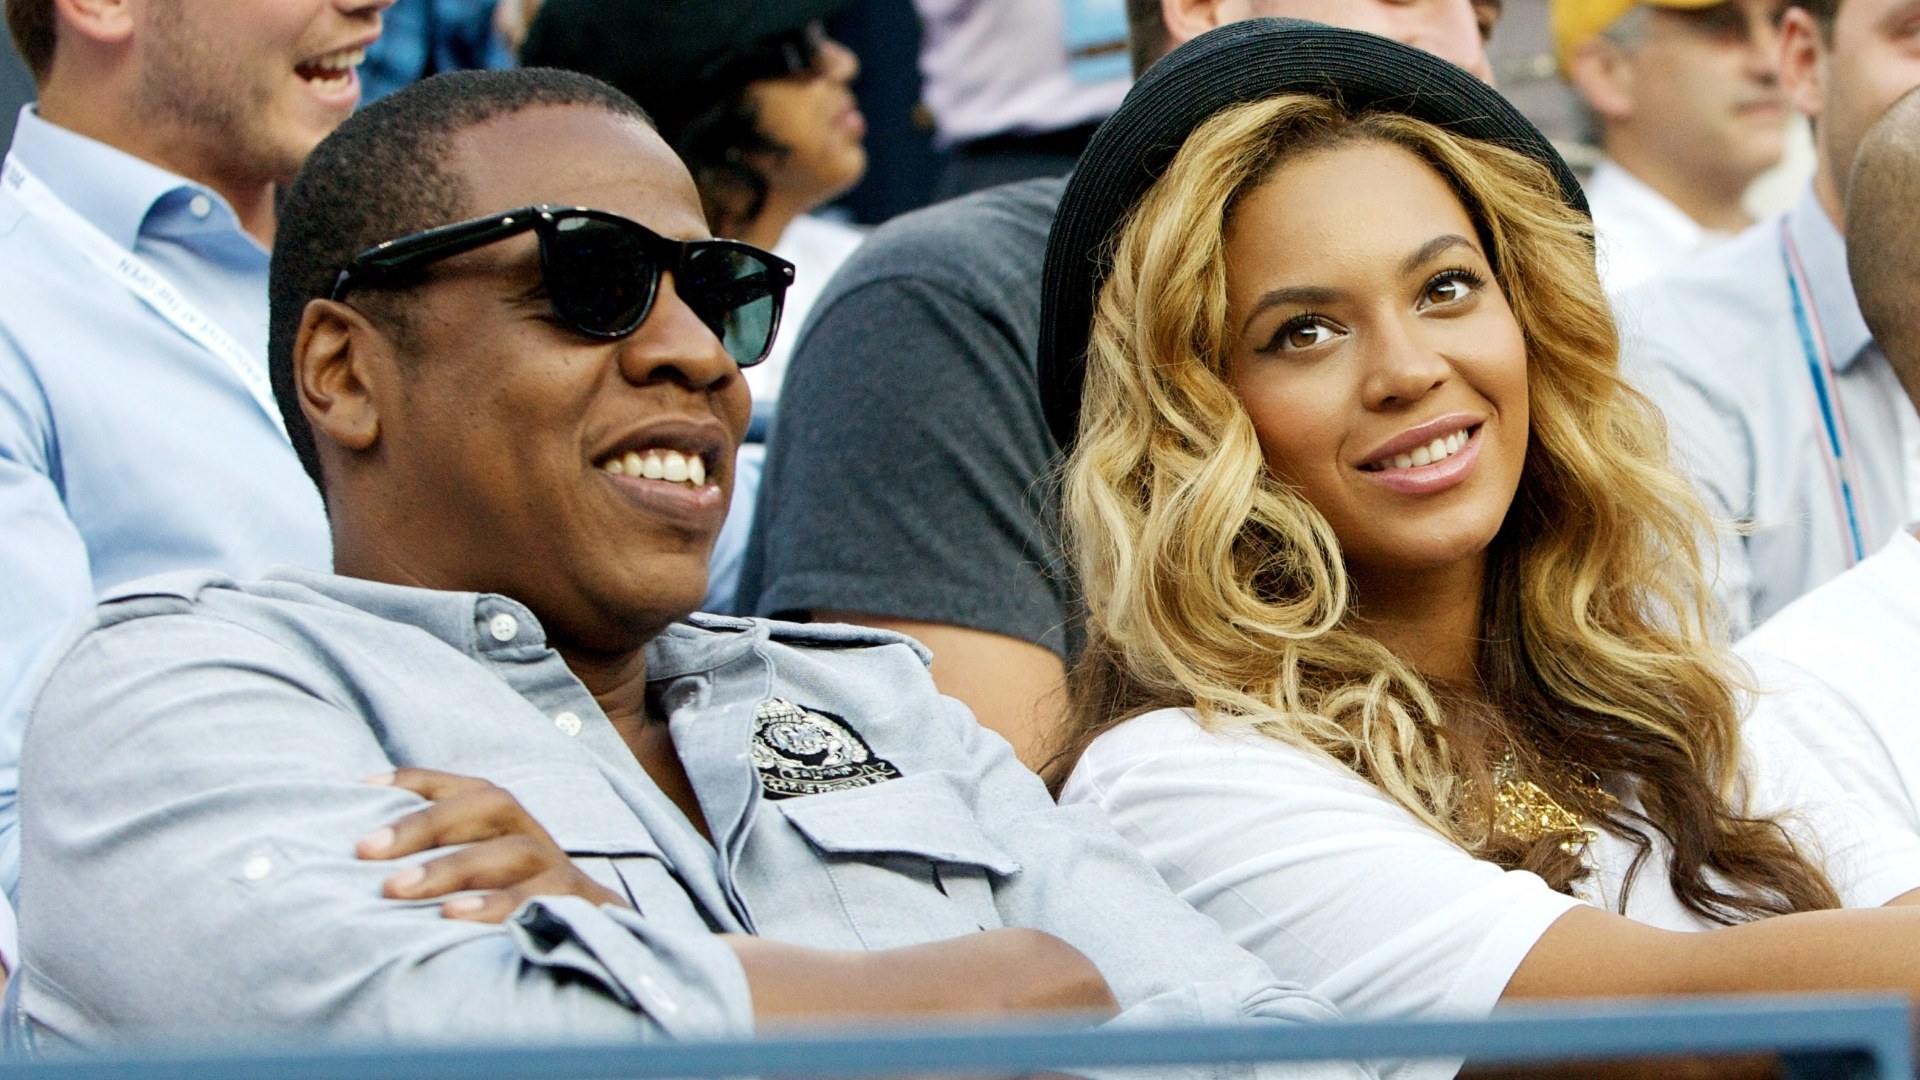 O casal de msicos Jay-Z e Beyonc assistem a final masculina do Aberto dos EUA de tnis, em Nova York, na segunda-feira (12/9/11)